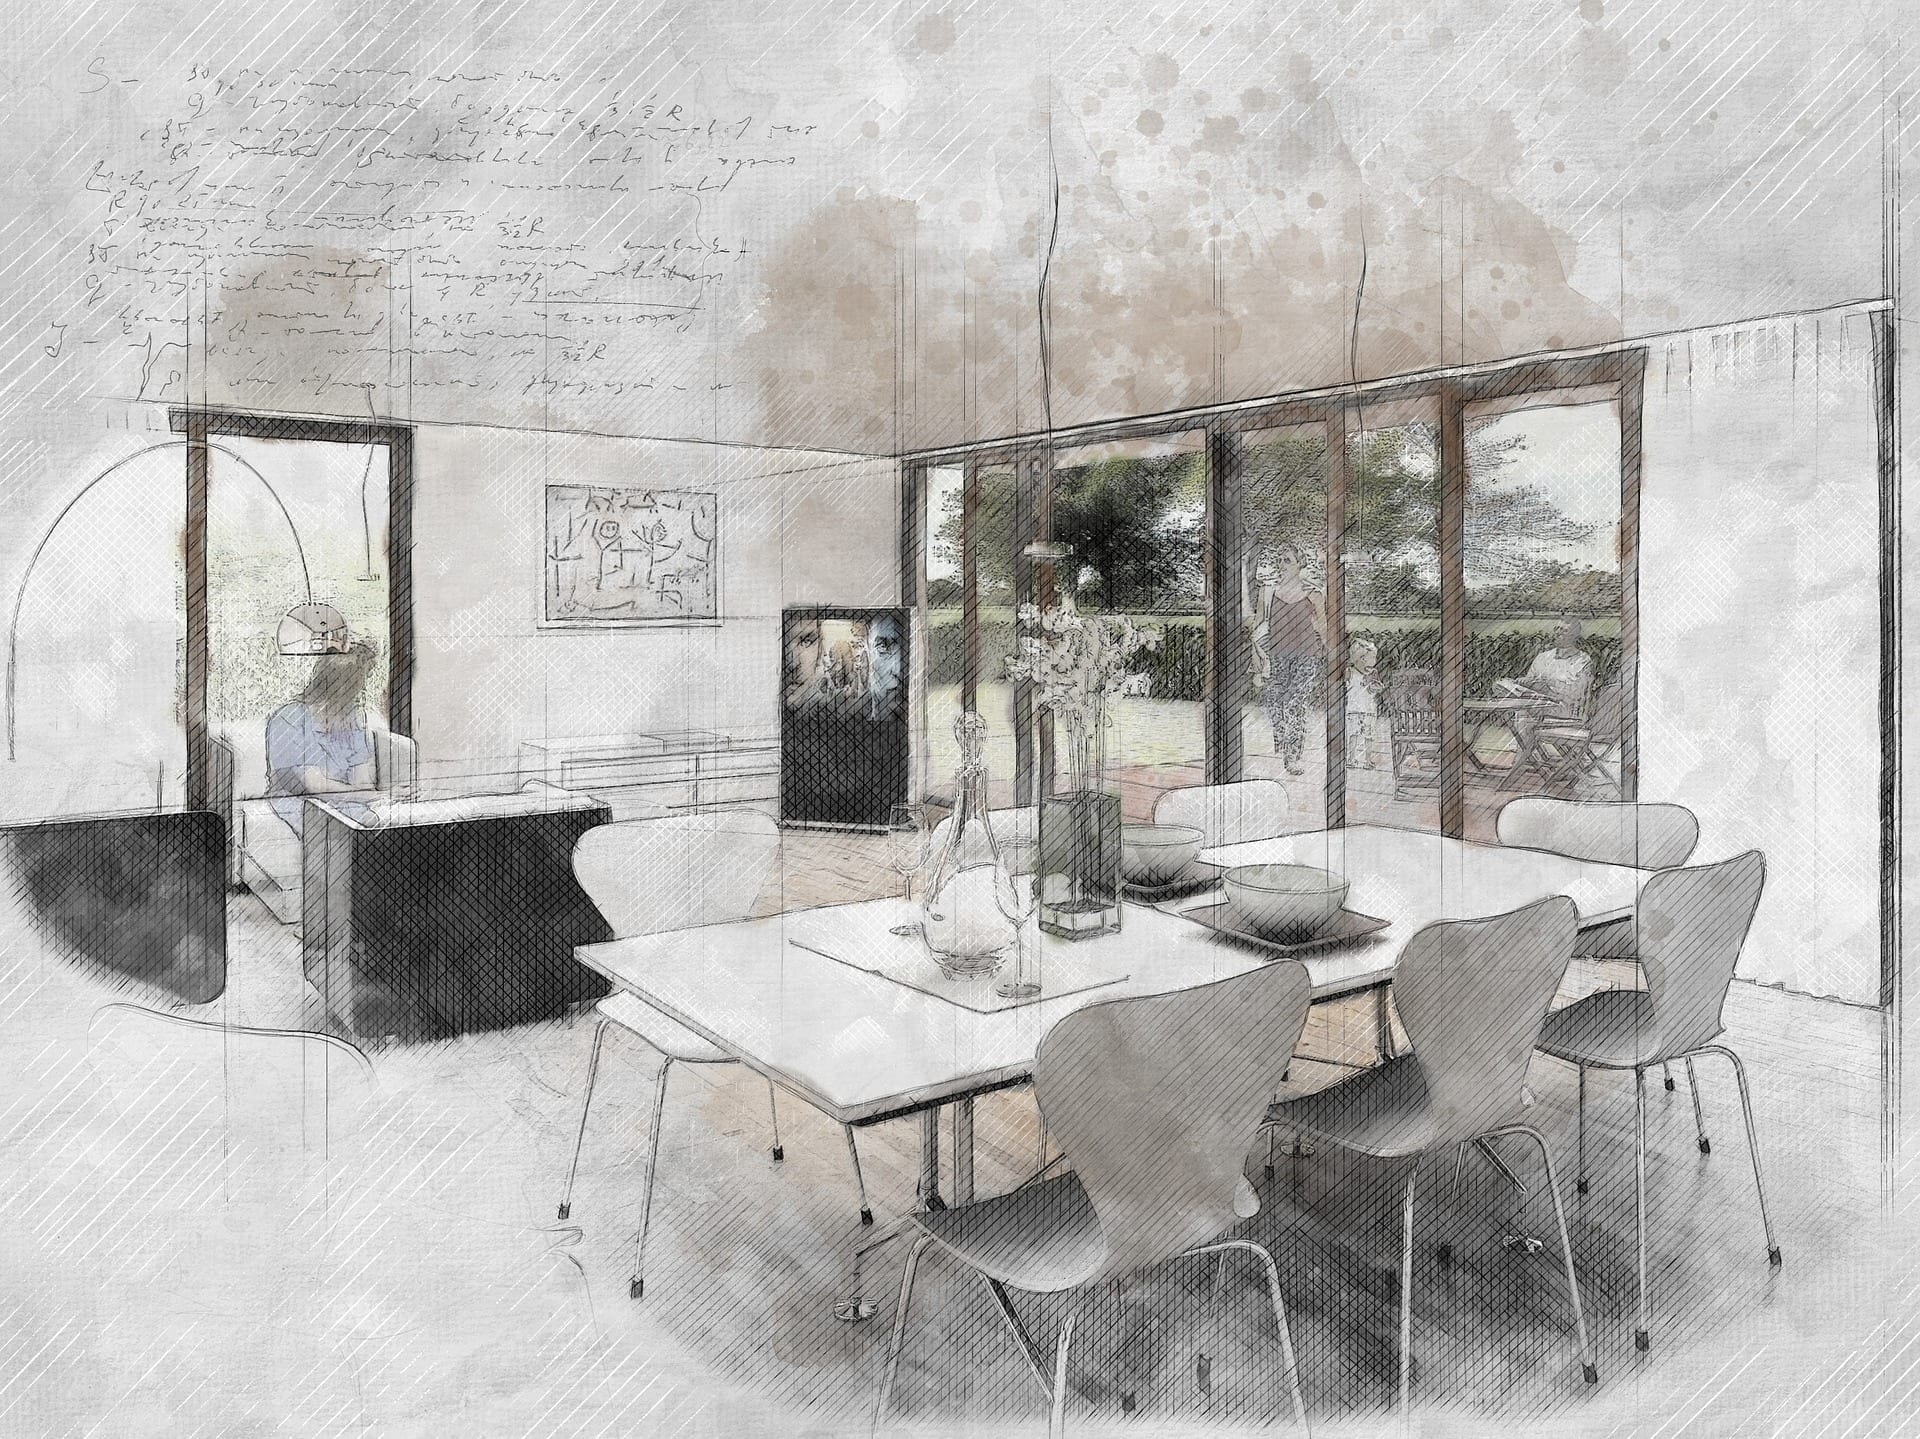 Sketch of an all white dining room with large windows